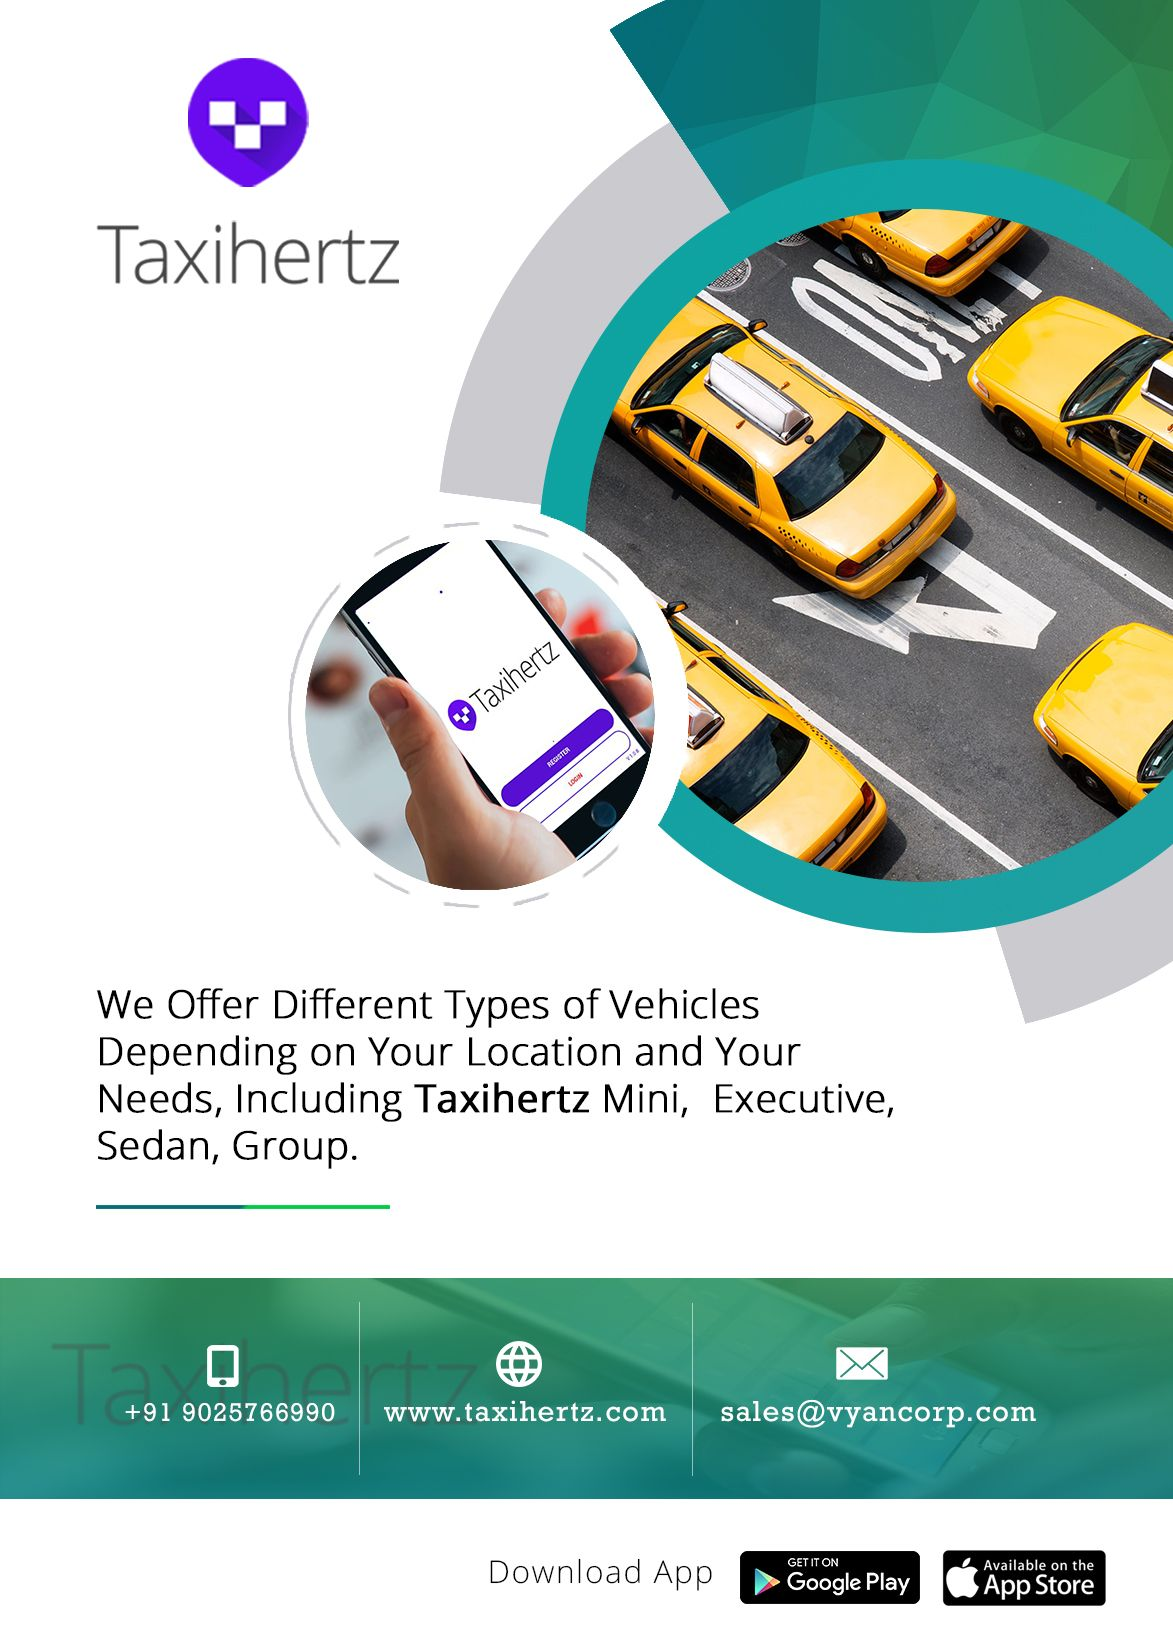 Taxi Hertz is one of the world's leading online taxi